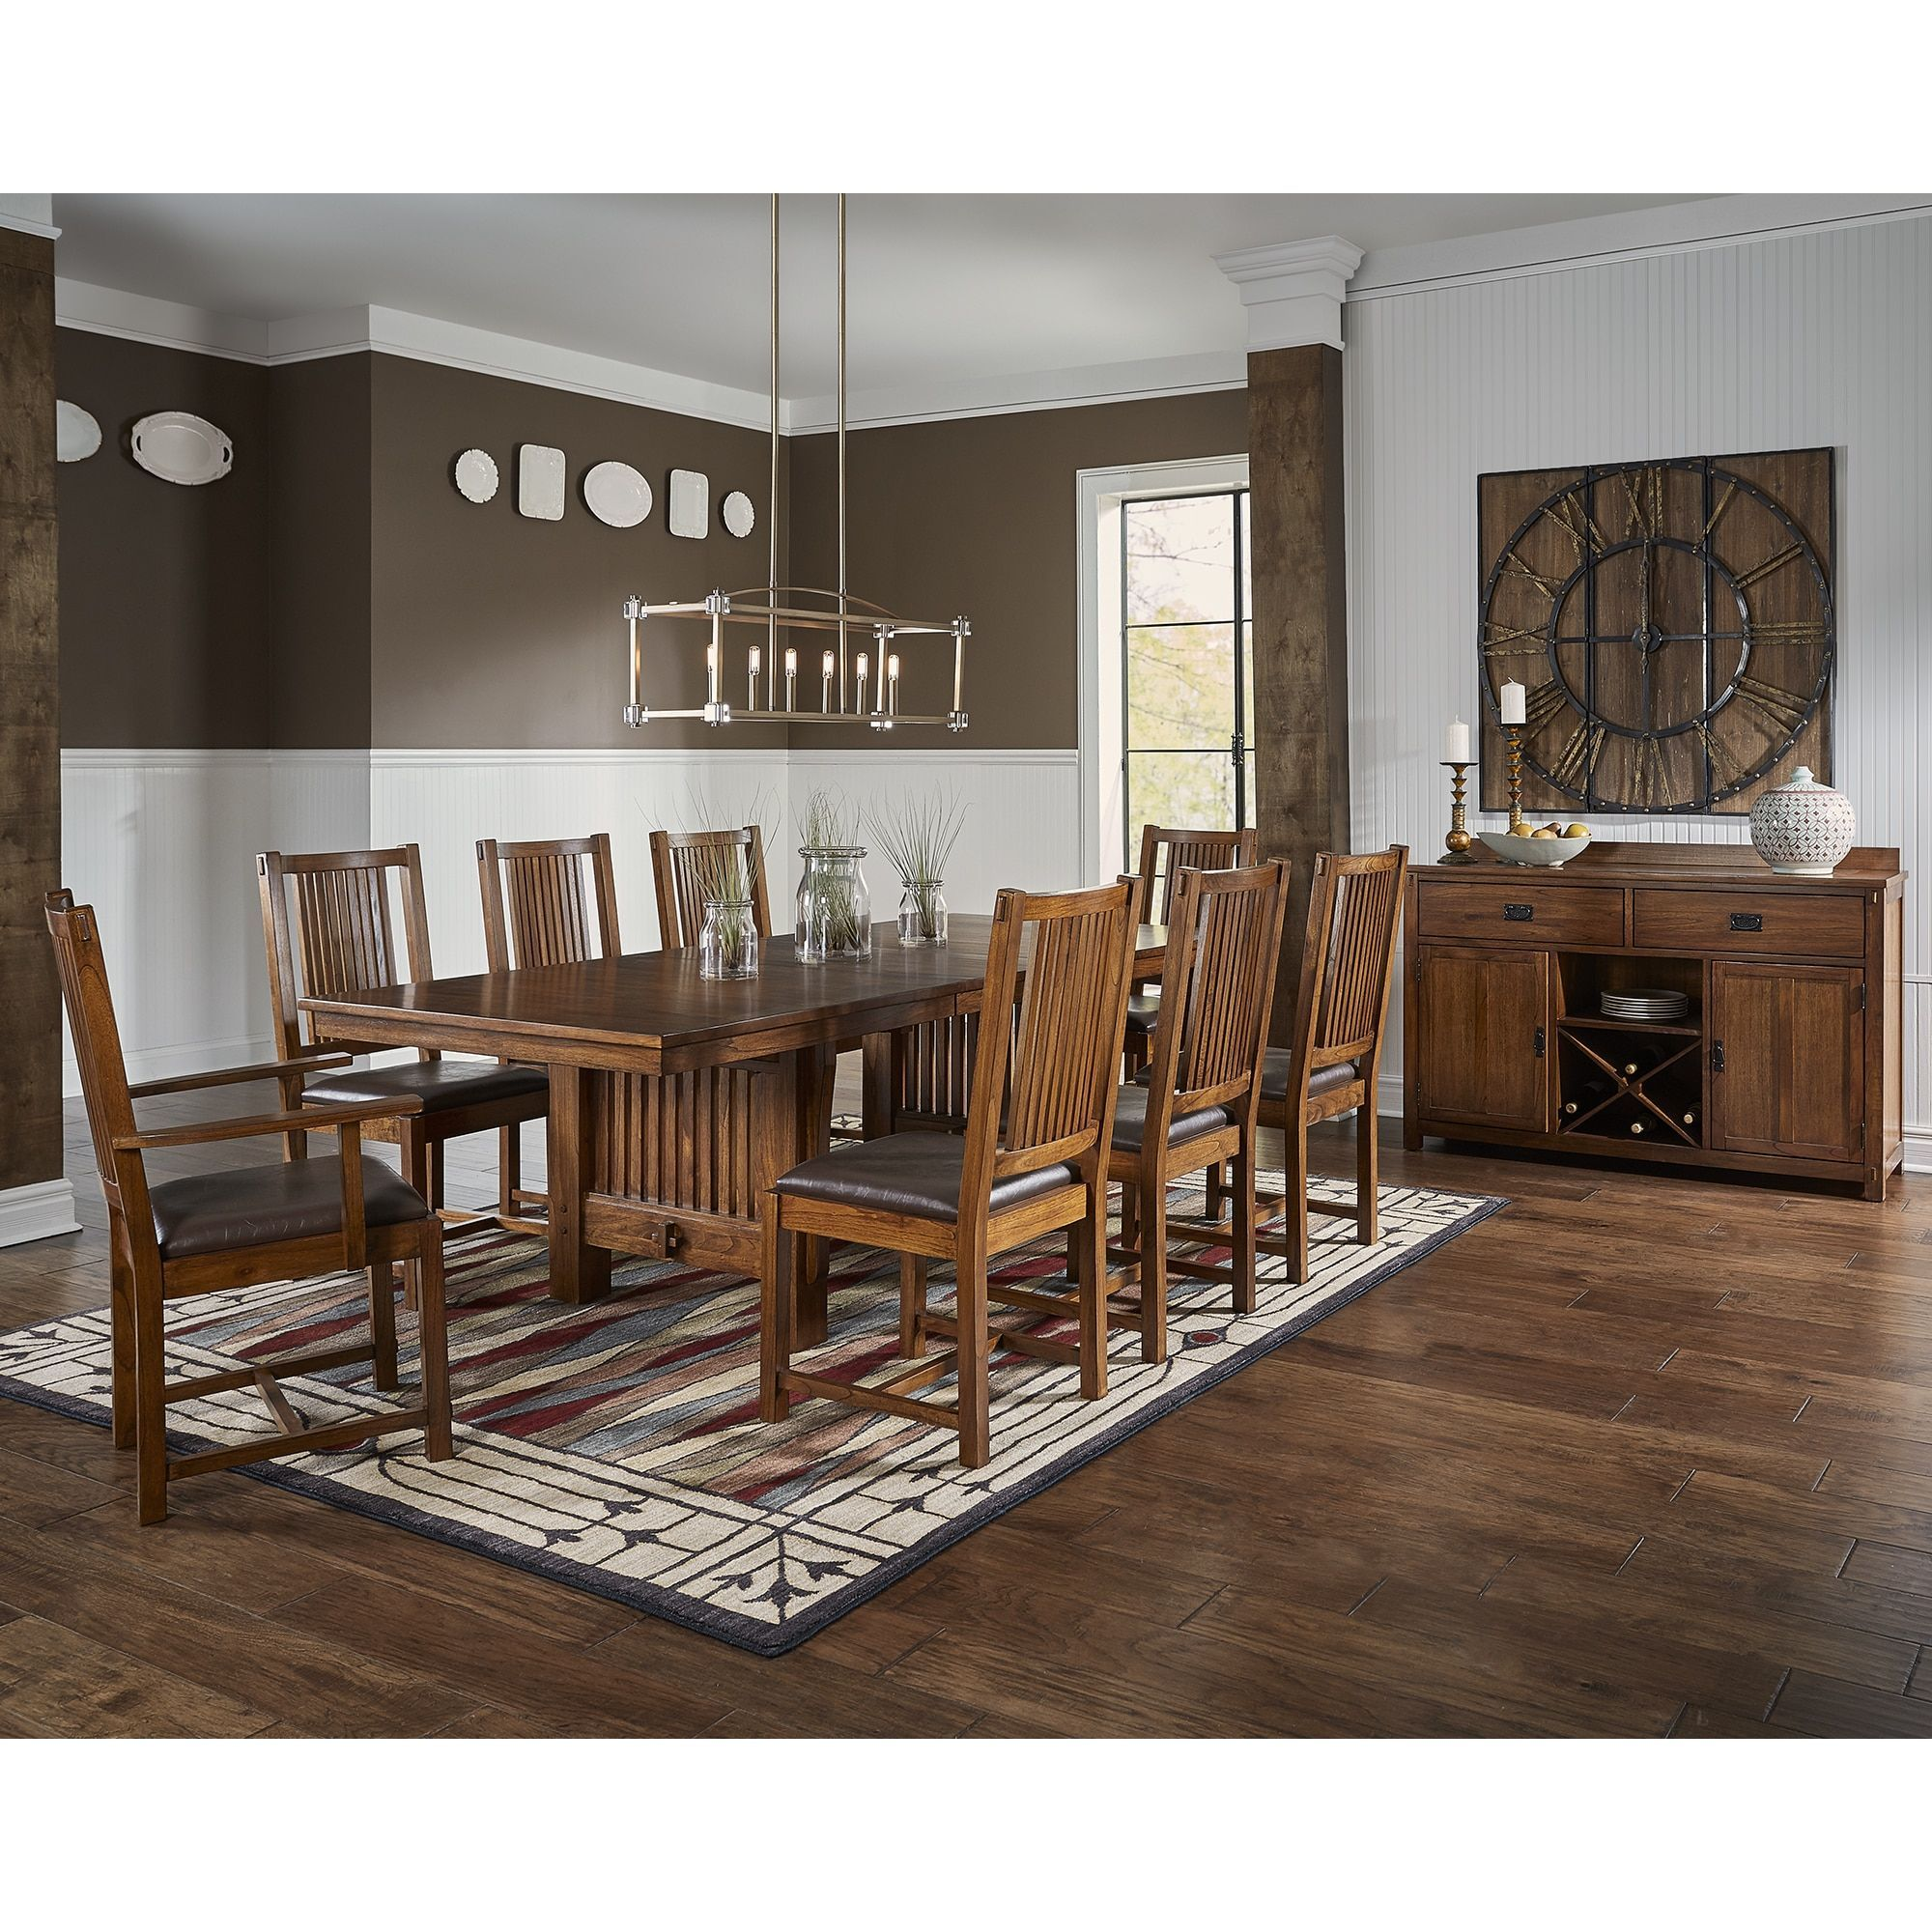 Dining Room Table Size For 10 Inspiration Gemma 10Piece Solid Wood Dining Set Gemma 10Pc Solid Wood Dining Design Ideas